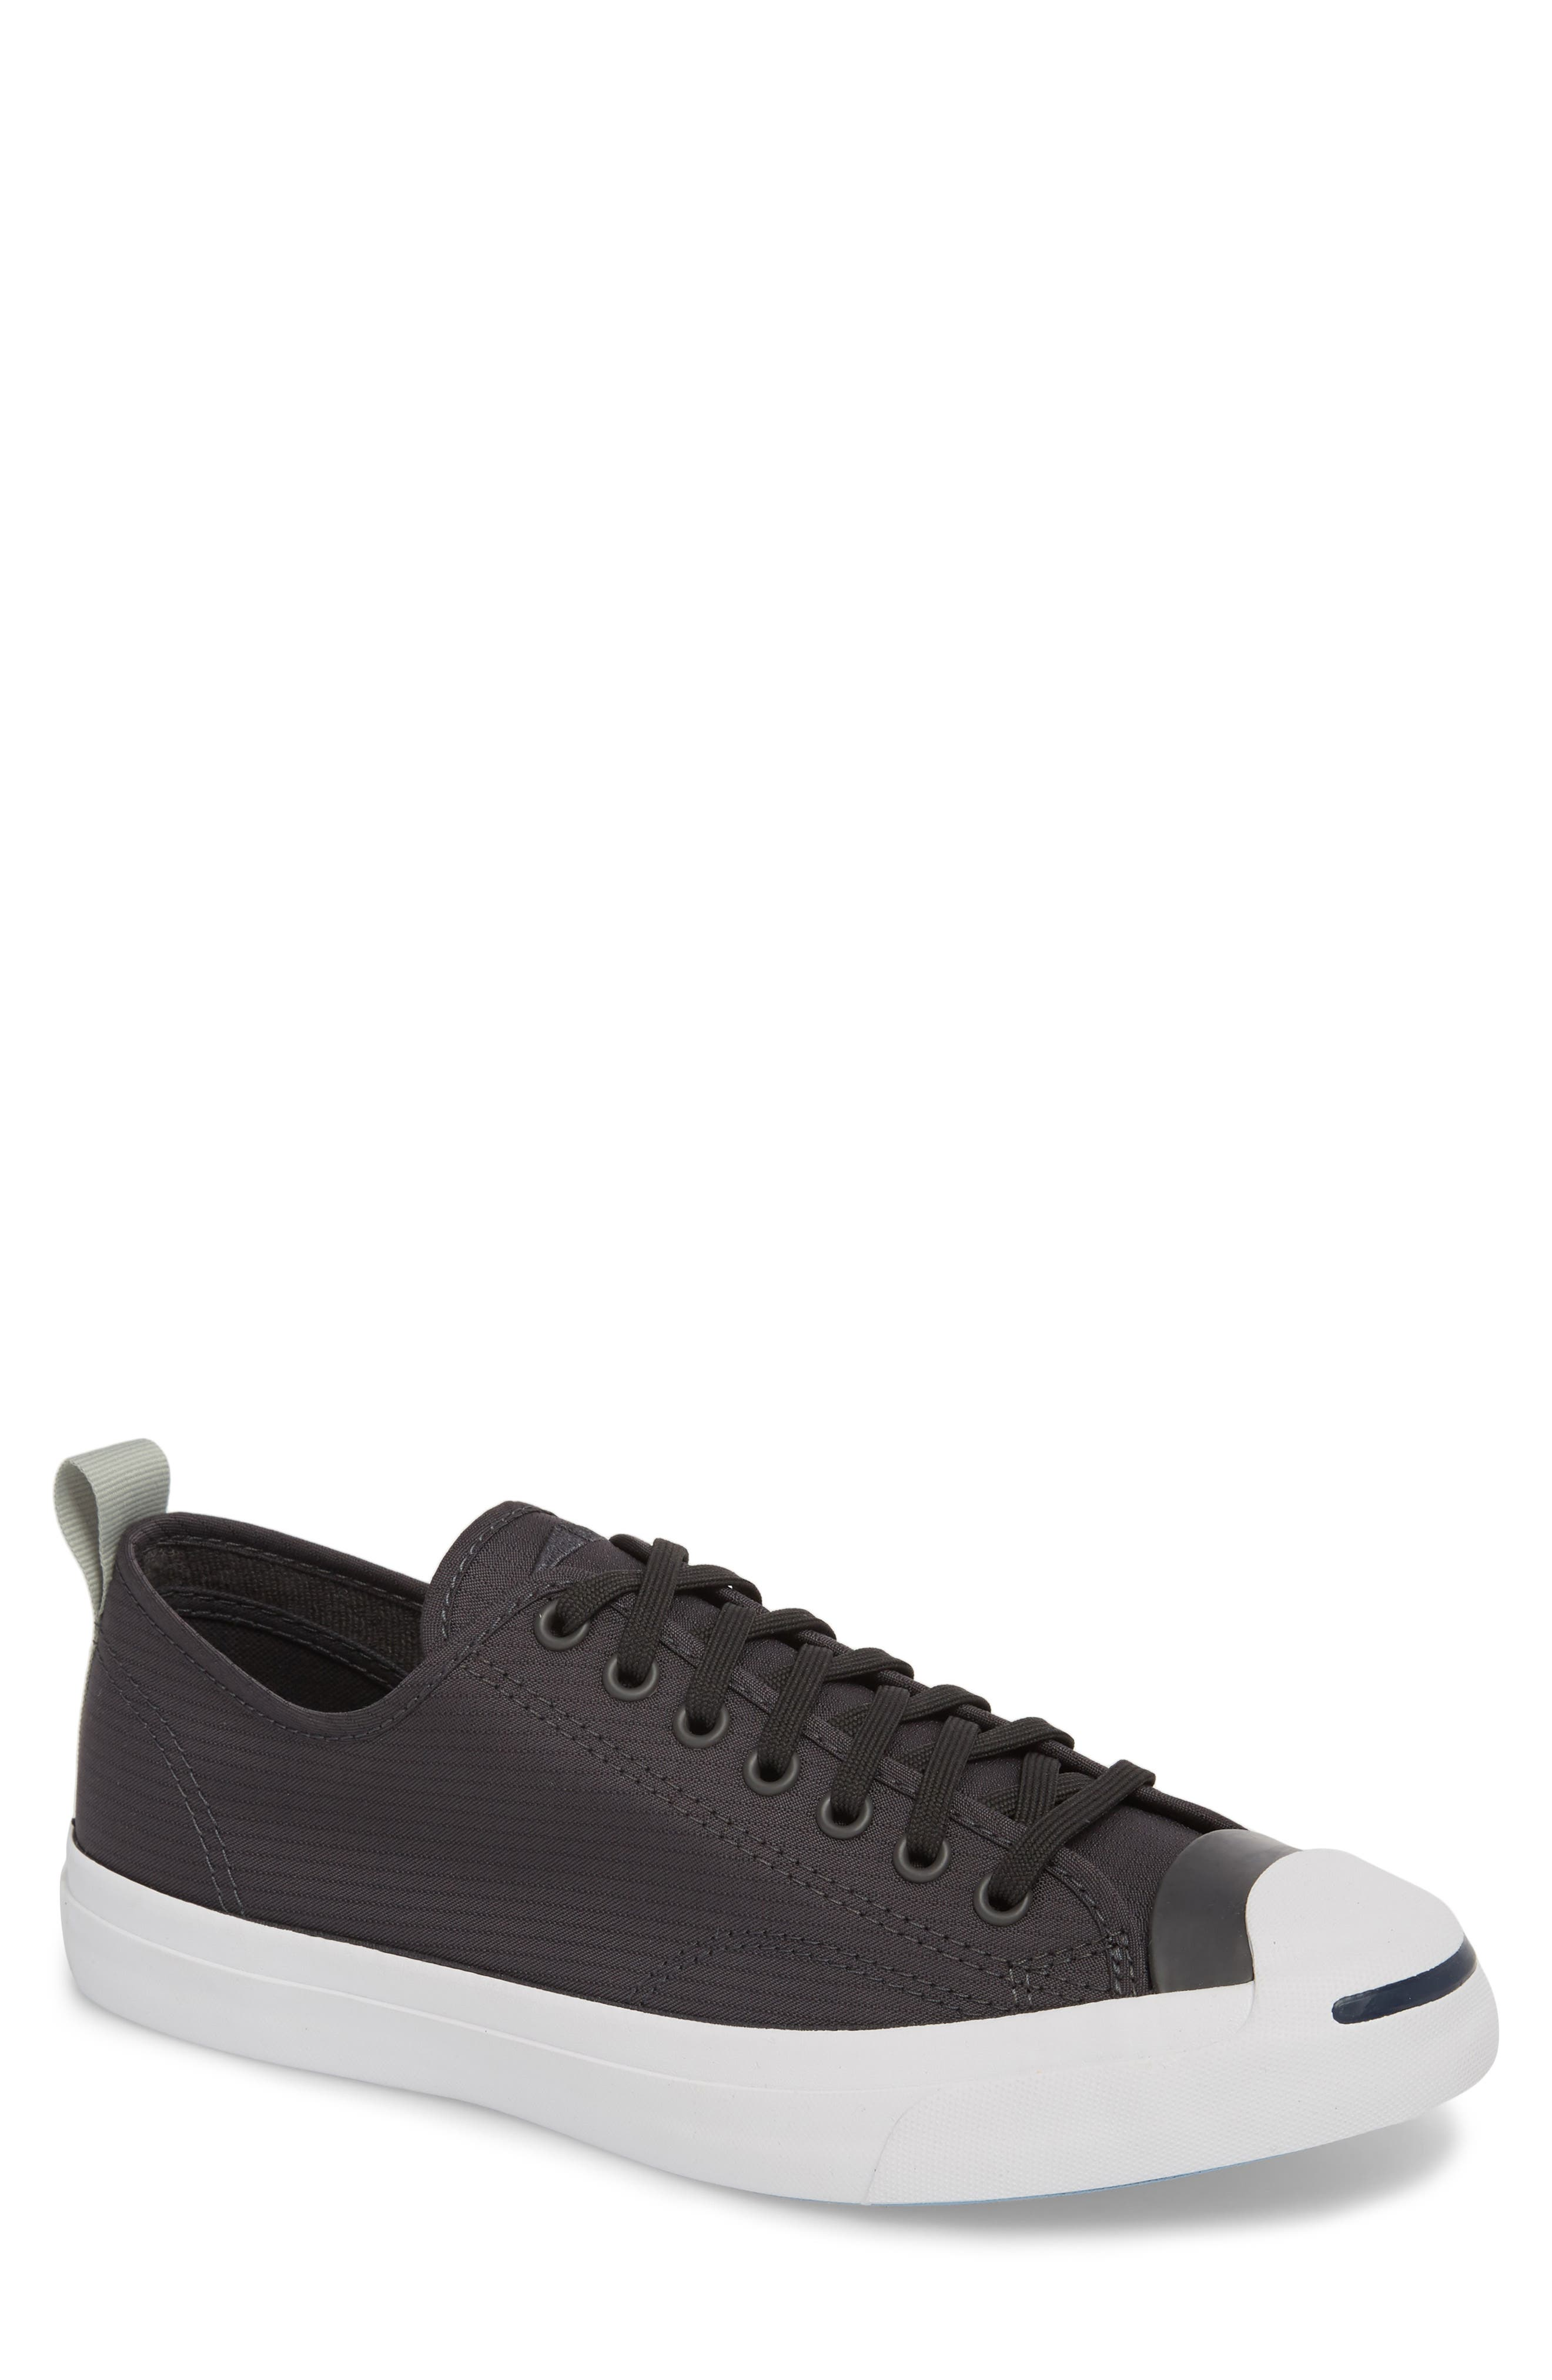 Jack Purcell Ripstop Sneaker,                             Main thumbnail 1, color,